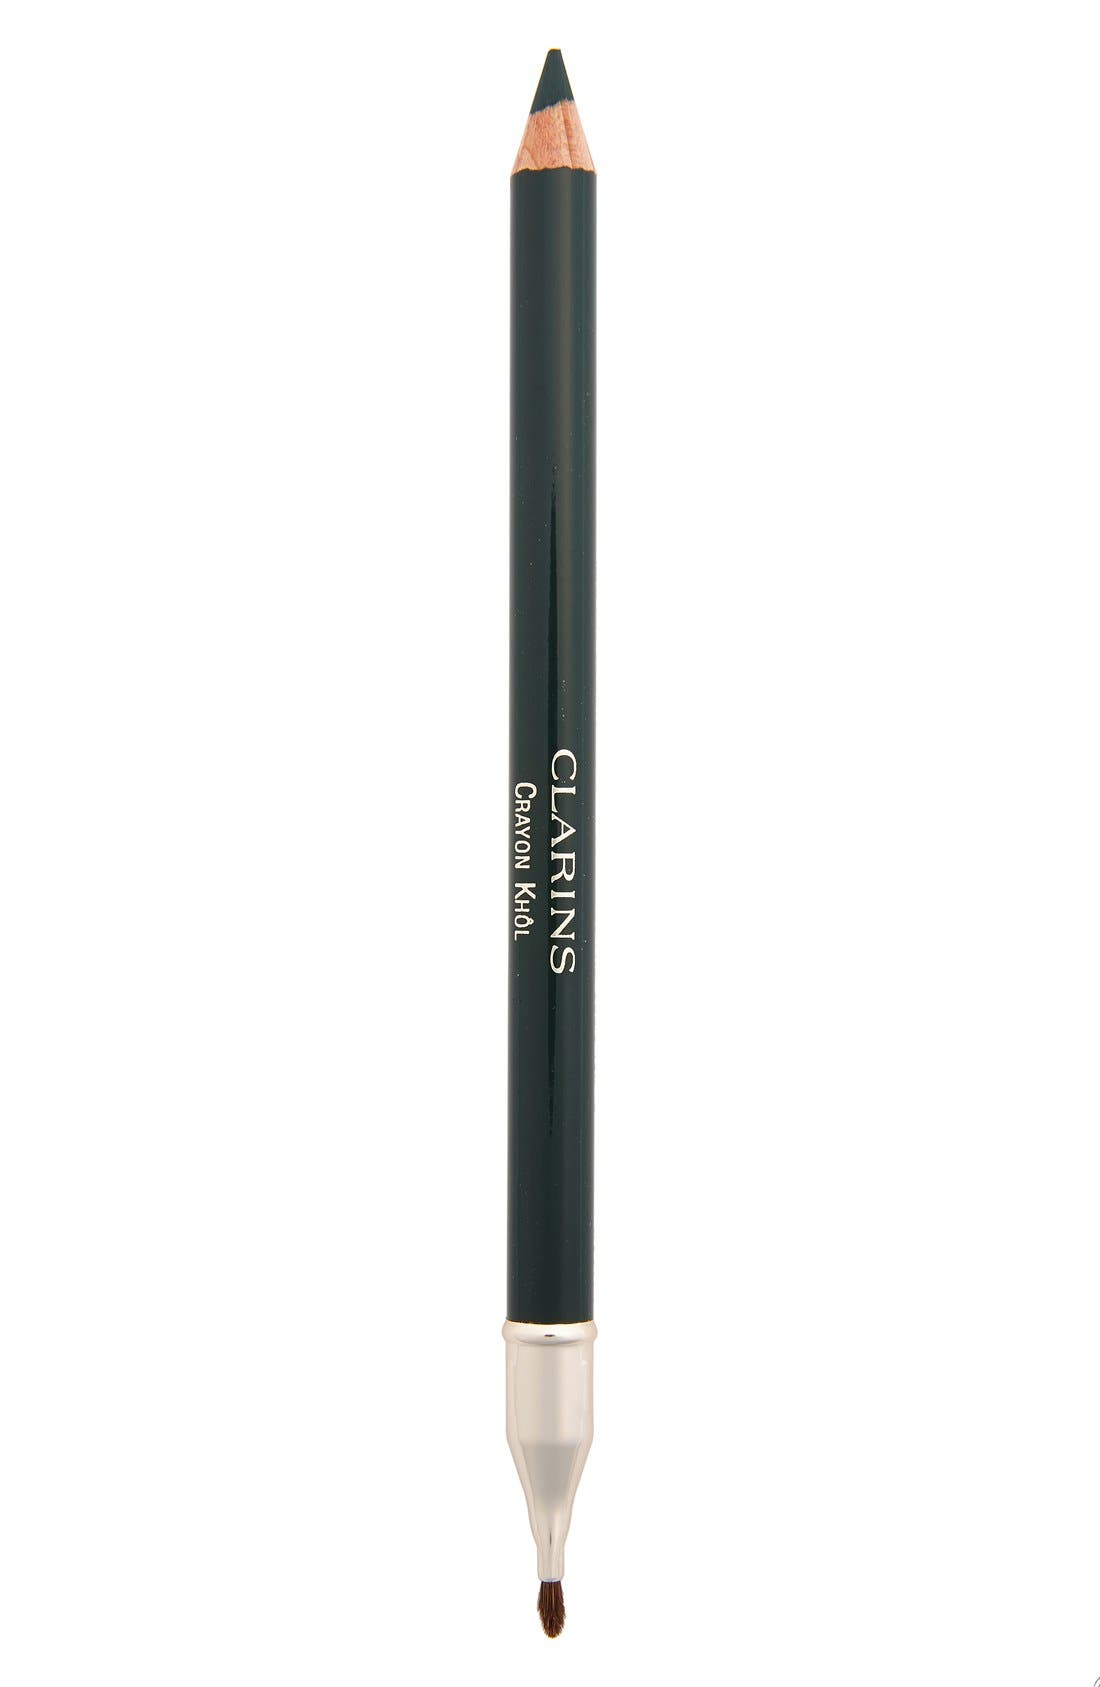 Crayon Khôl Eyeliner Pencil,                         Main,                         color, 09-INTENSE GREEN